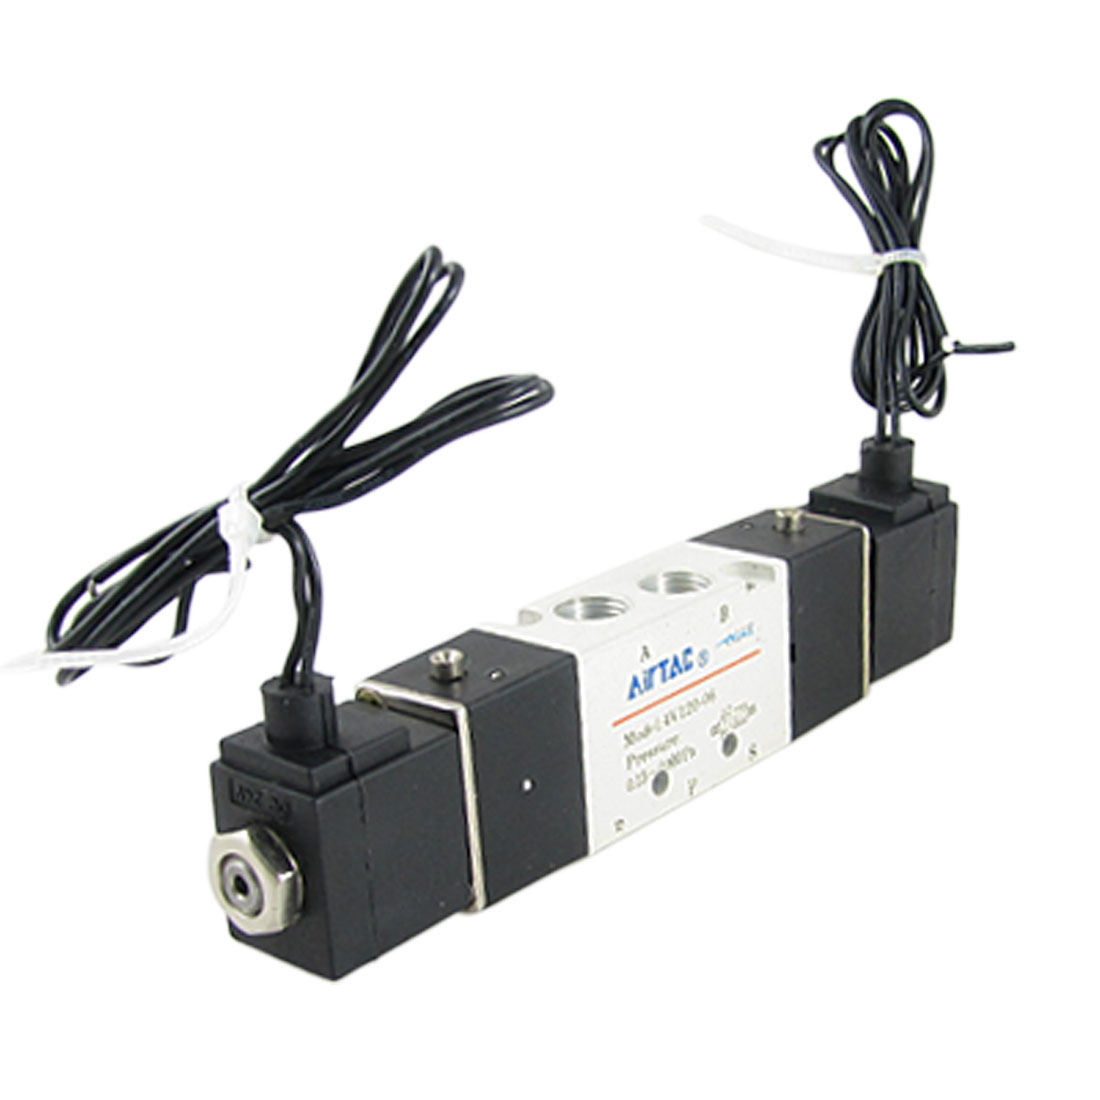 DC 24V 4V120-06 2 Position 5 Way Pneumatic Air Solenoid Valve